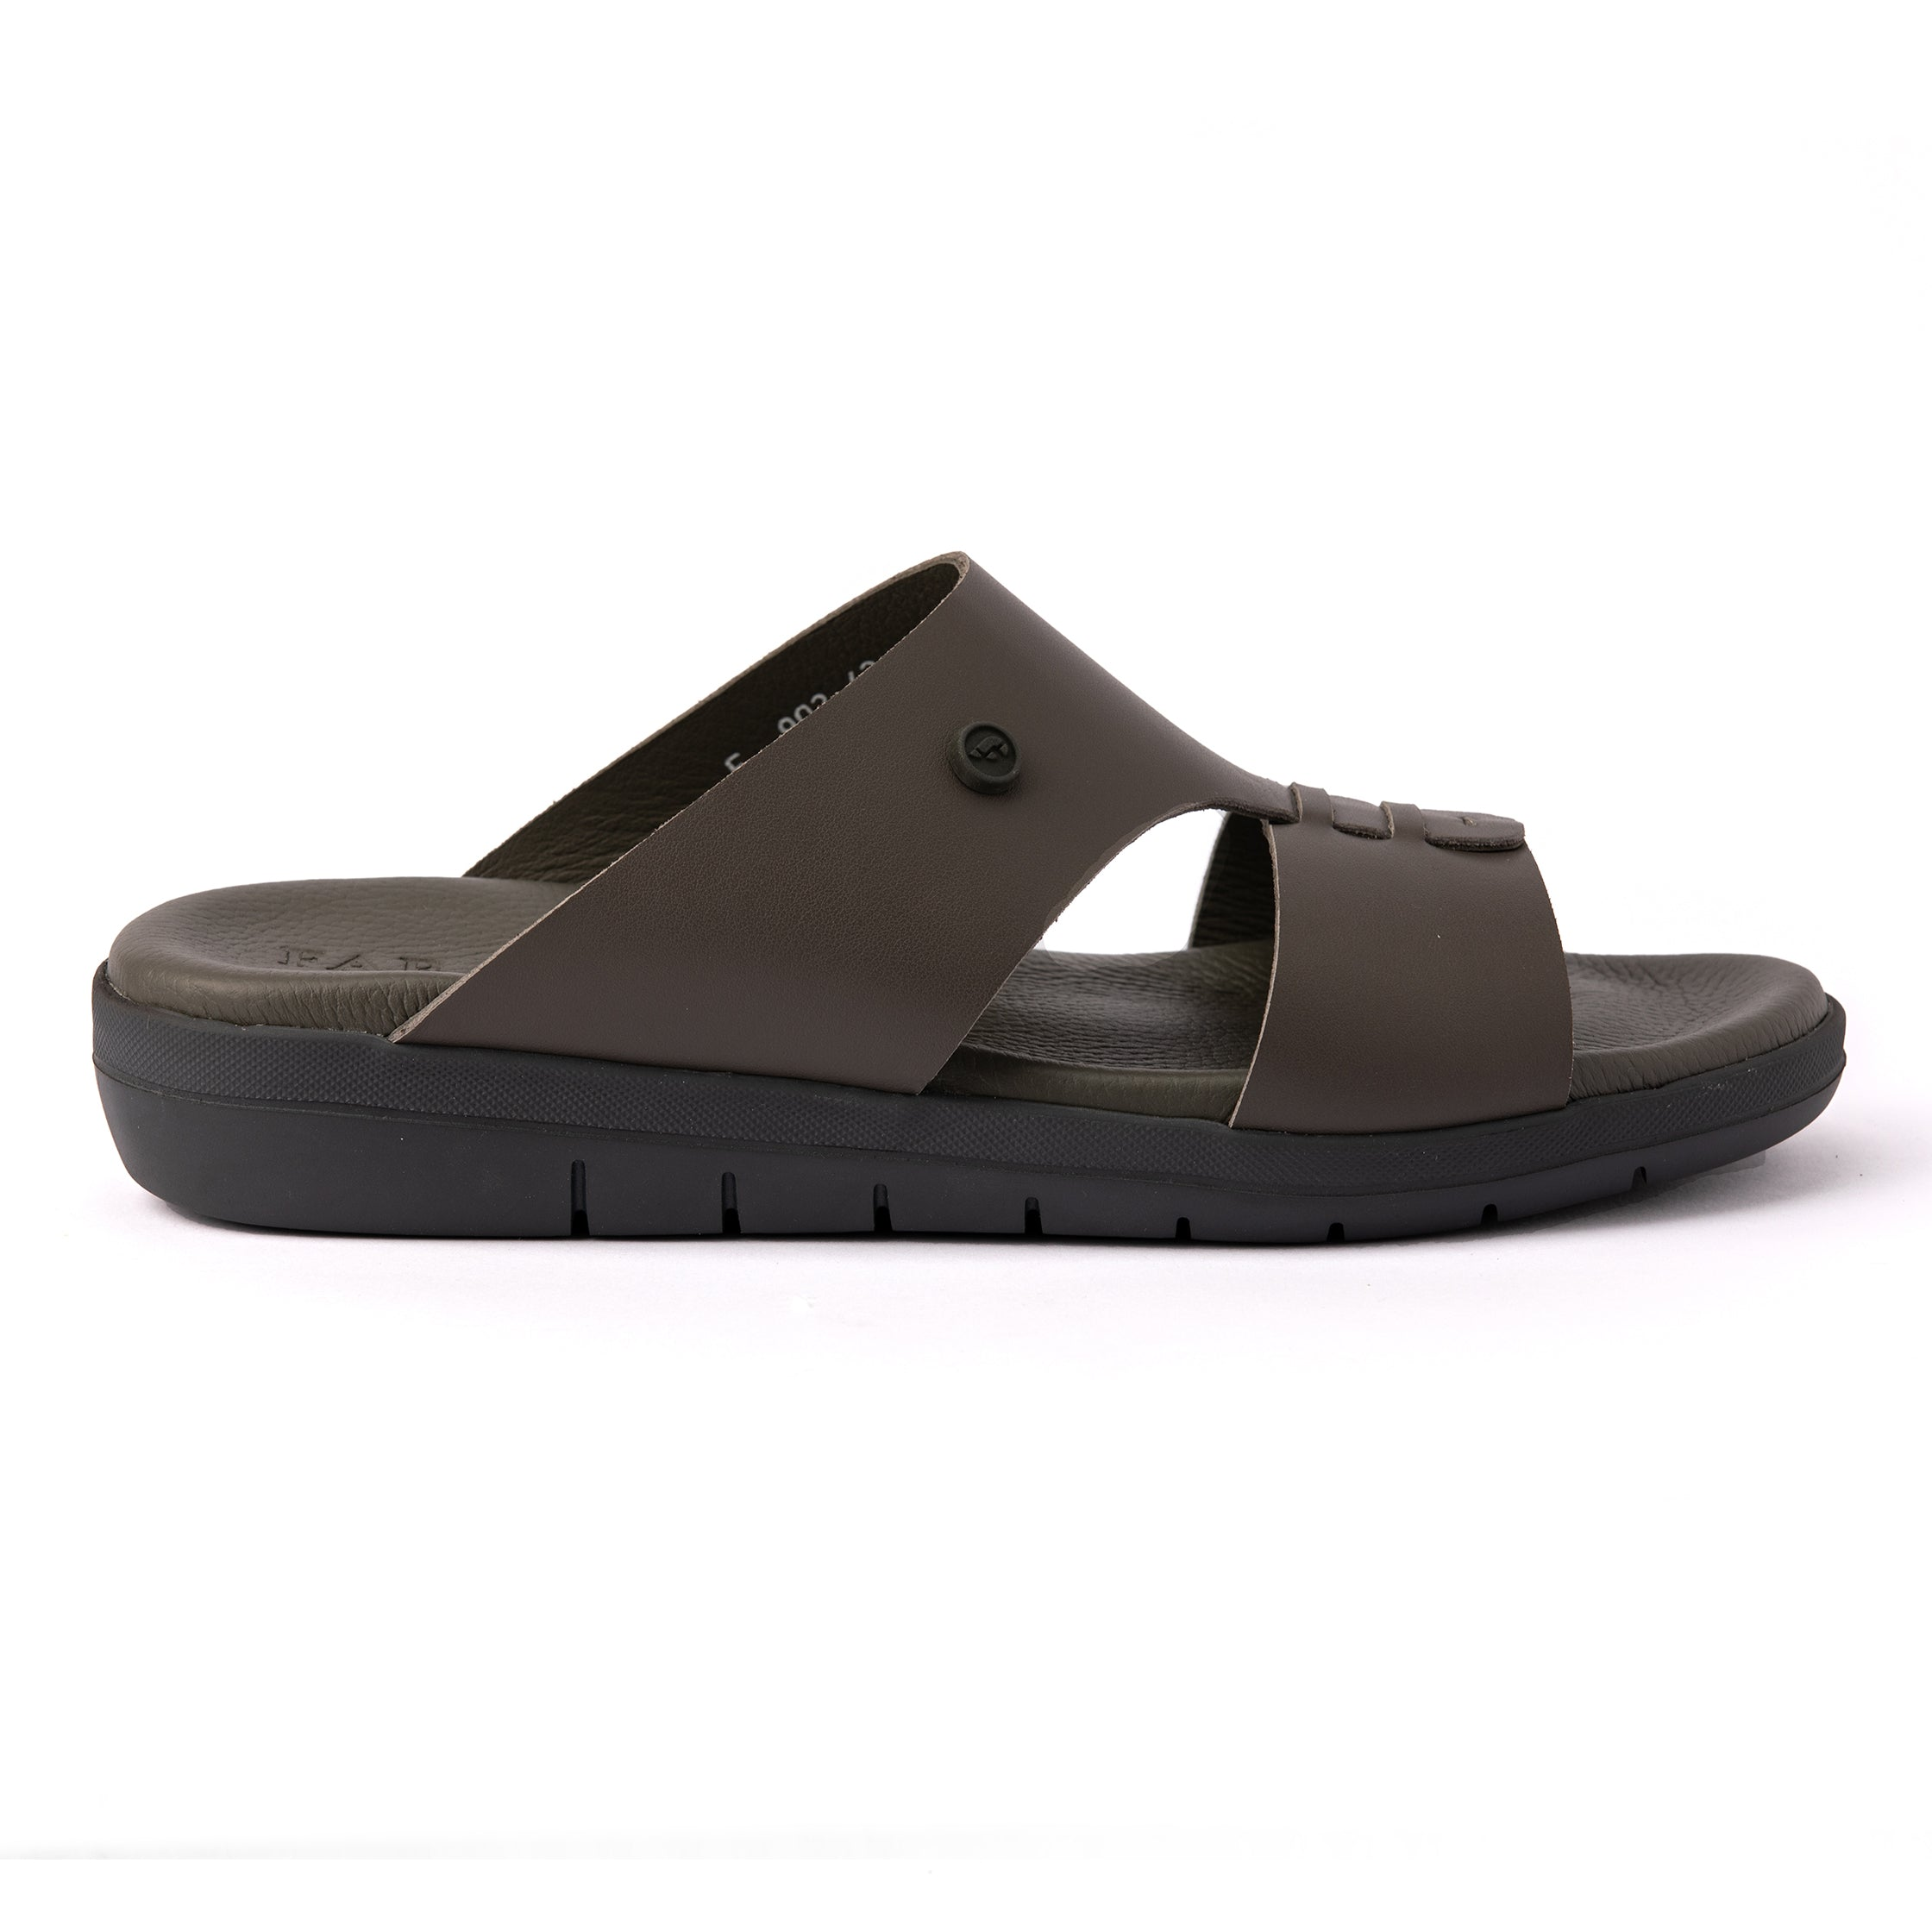 GREY Matt(901) Arabic Sandals